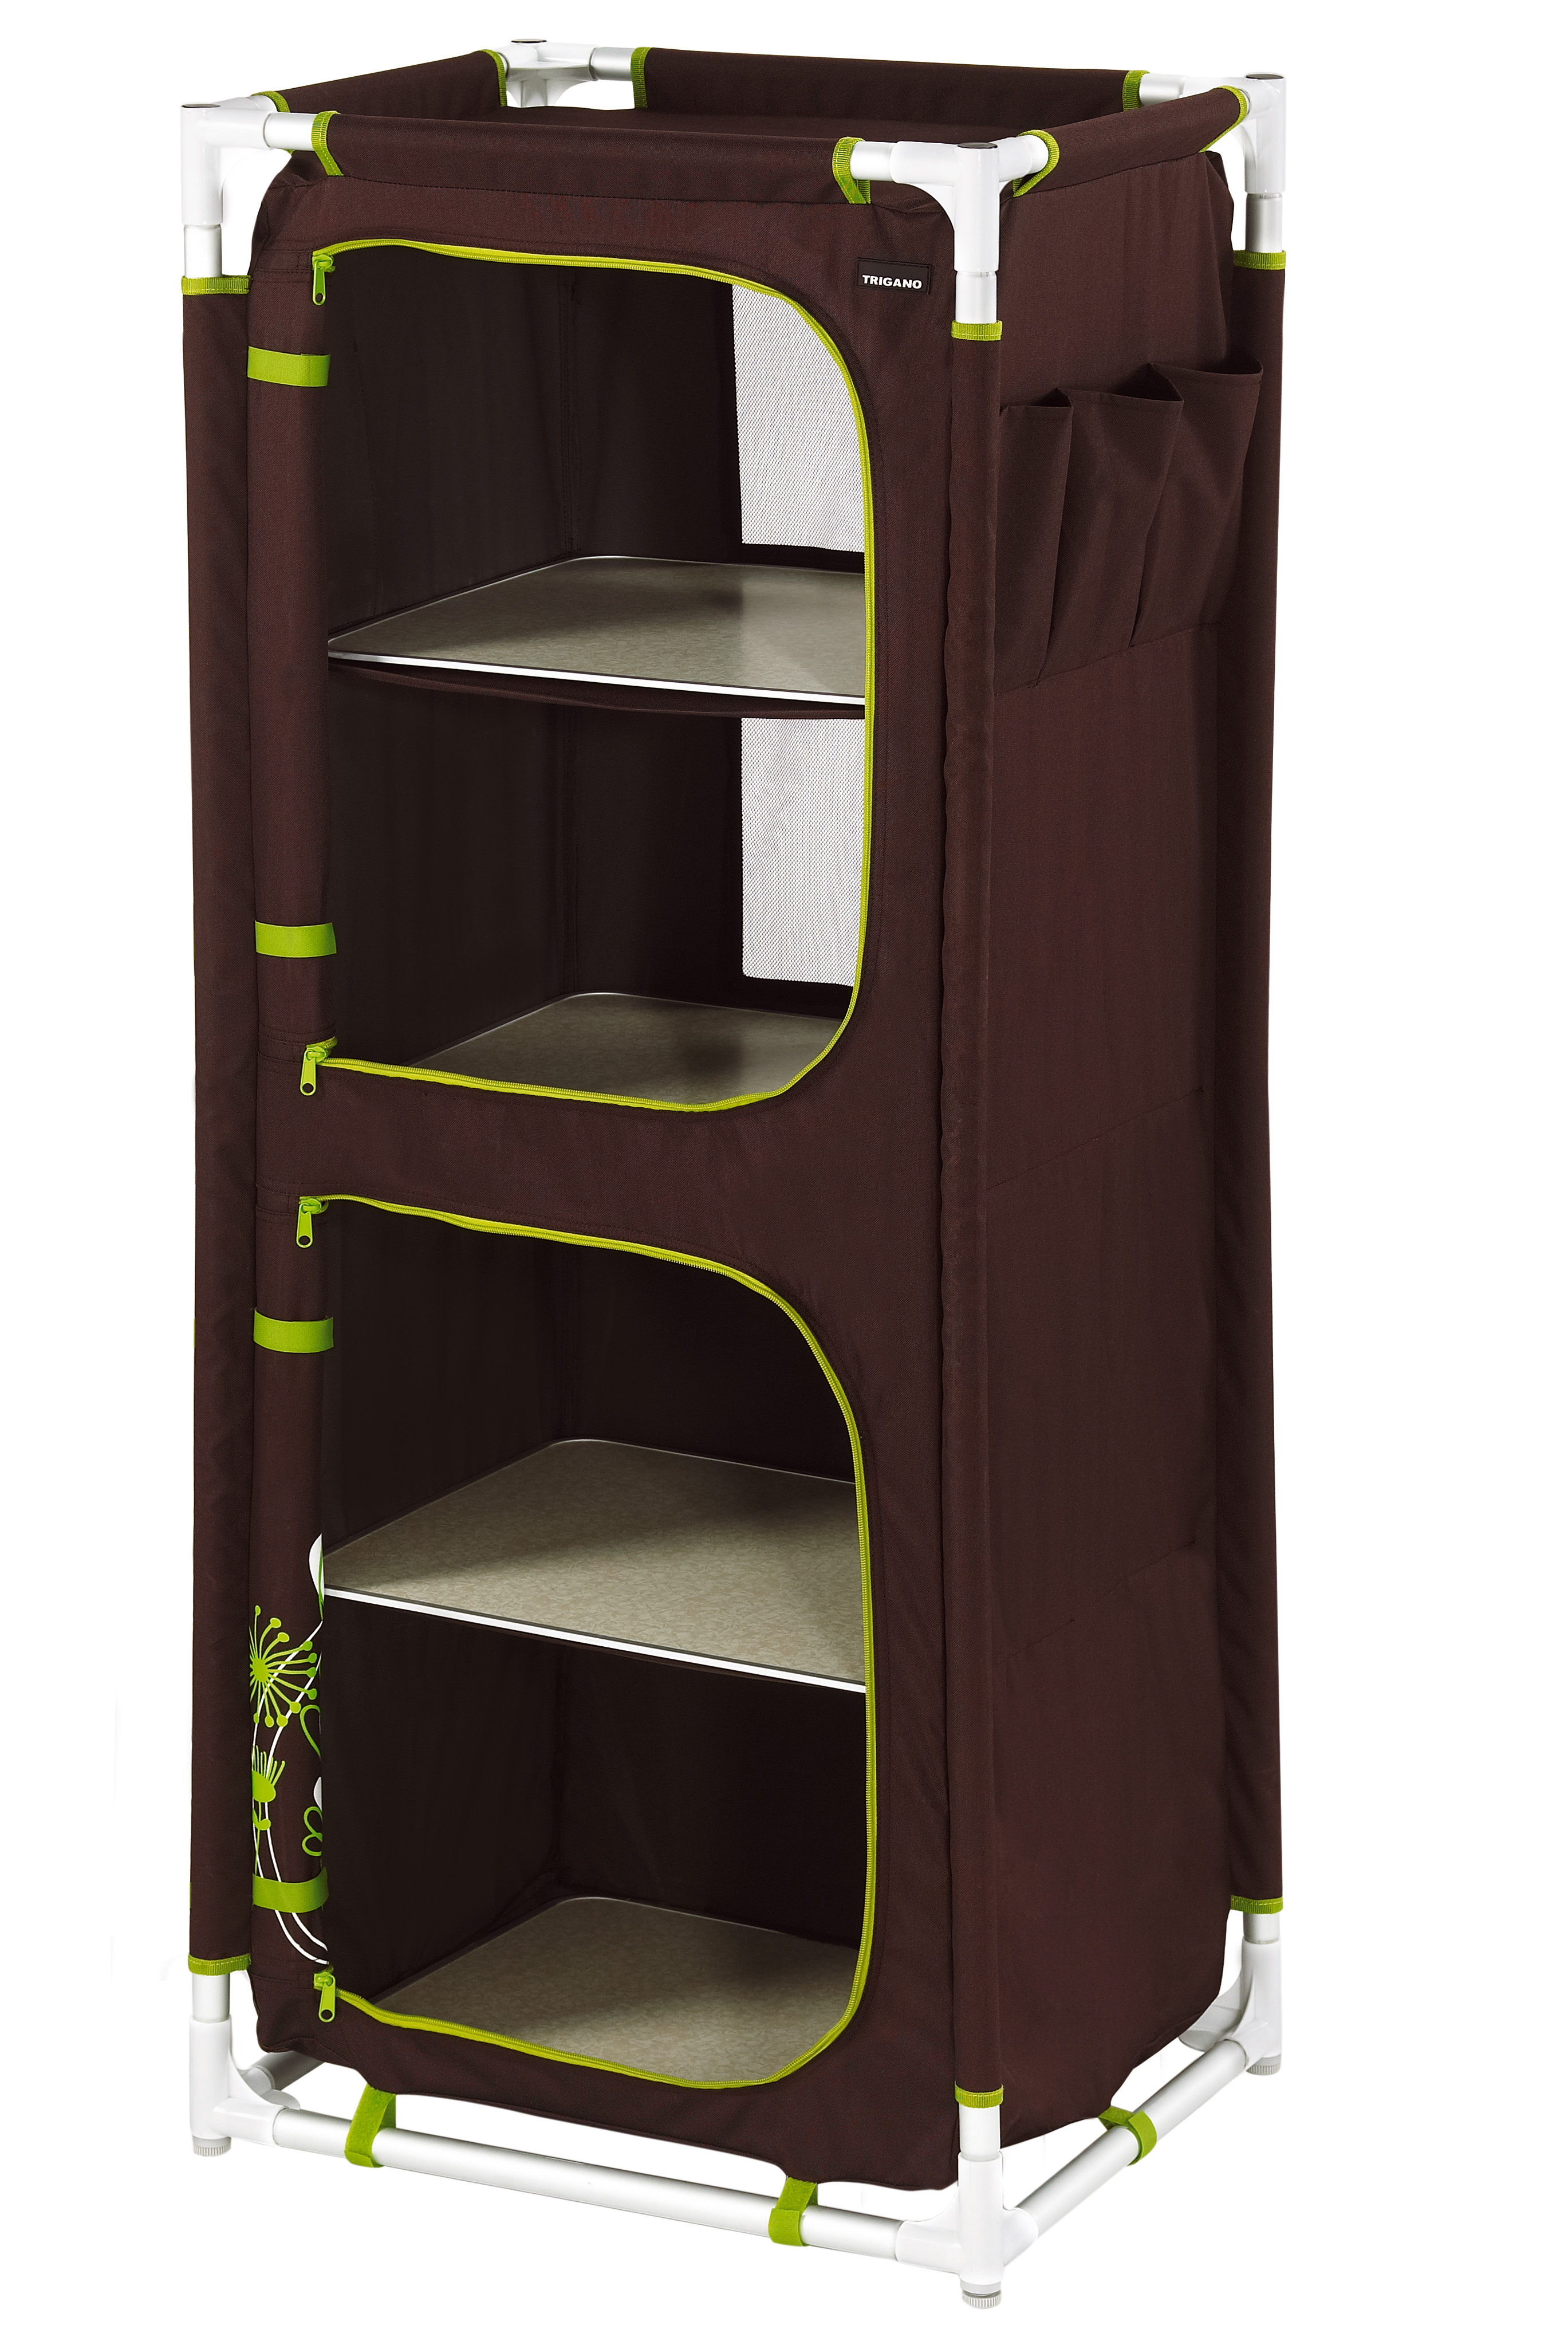 meuble de rangement m m047l30 boutique supermarket caravanes vente de mobilier de camping et. Black Bedroom Furniture Sets. Home Design Ideas